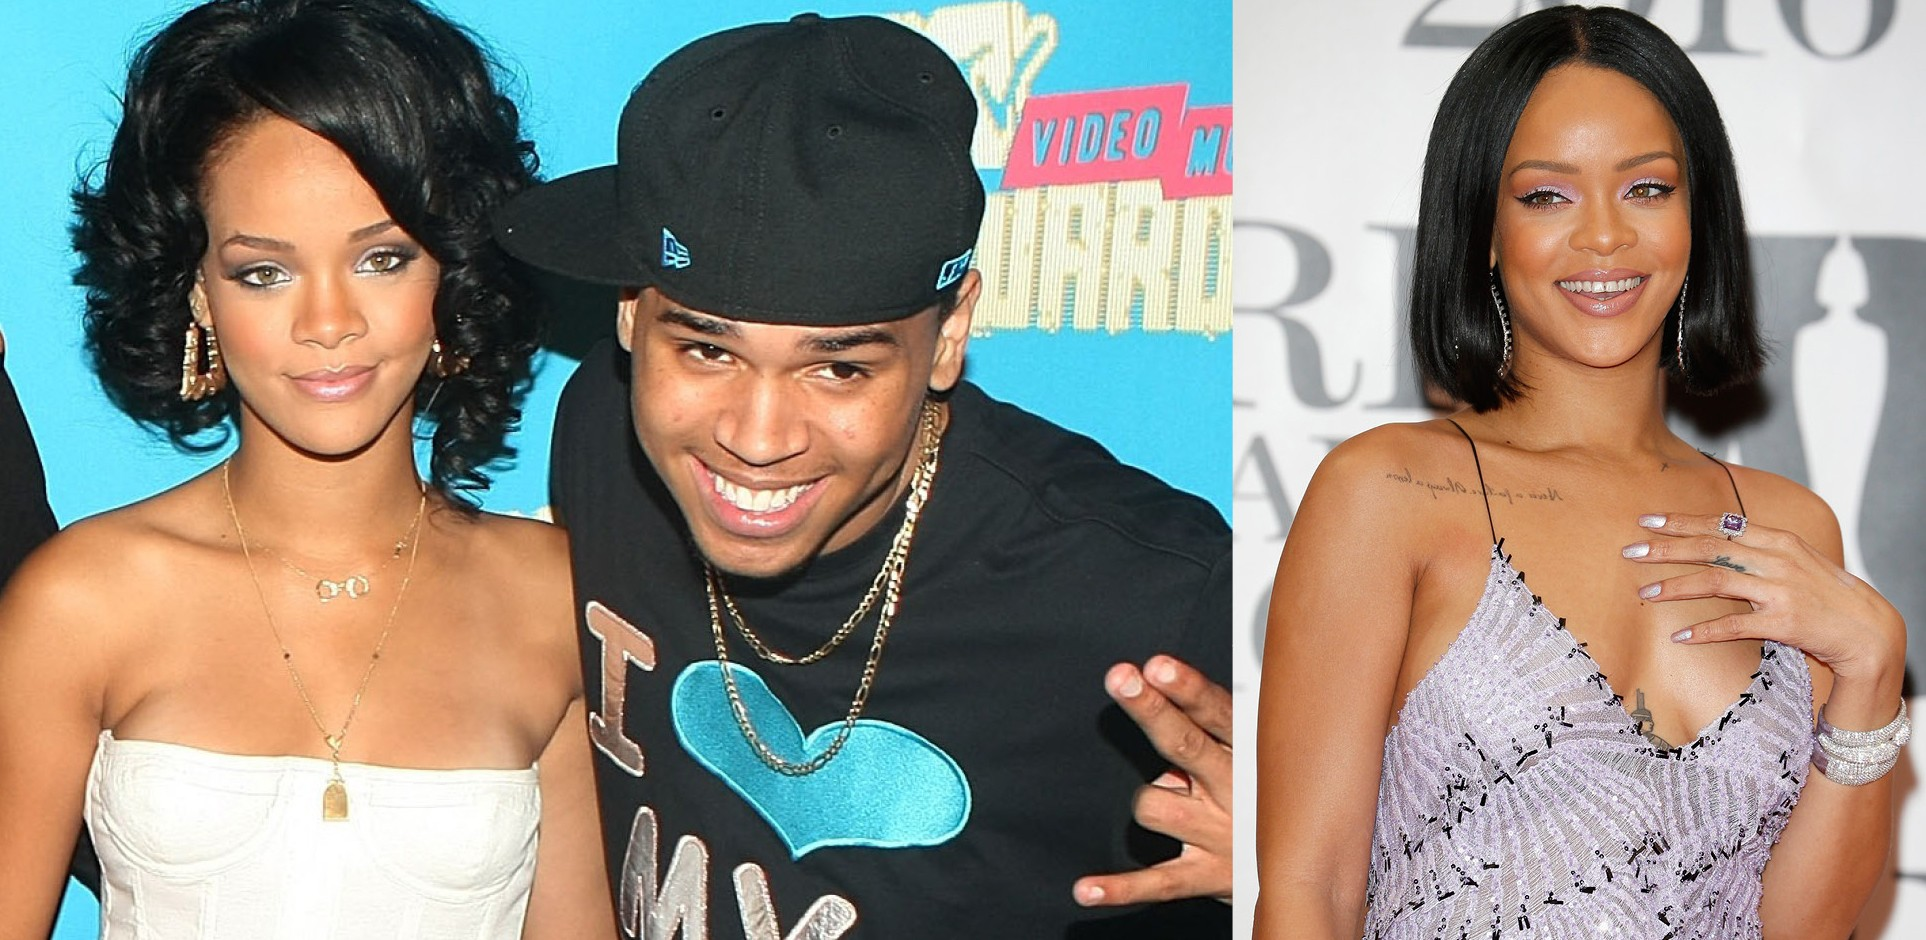 Rihanna e Chris Brown em 2007. E Rihanna em 2016 (Foto: Getty Images)